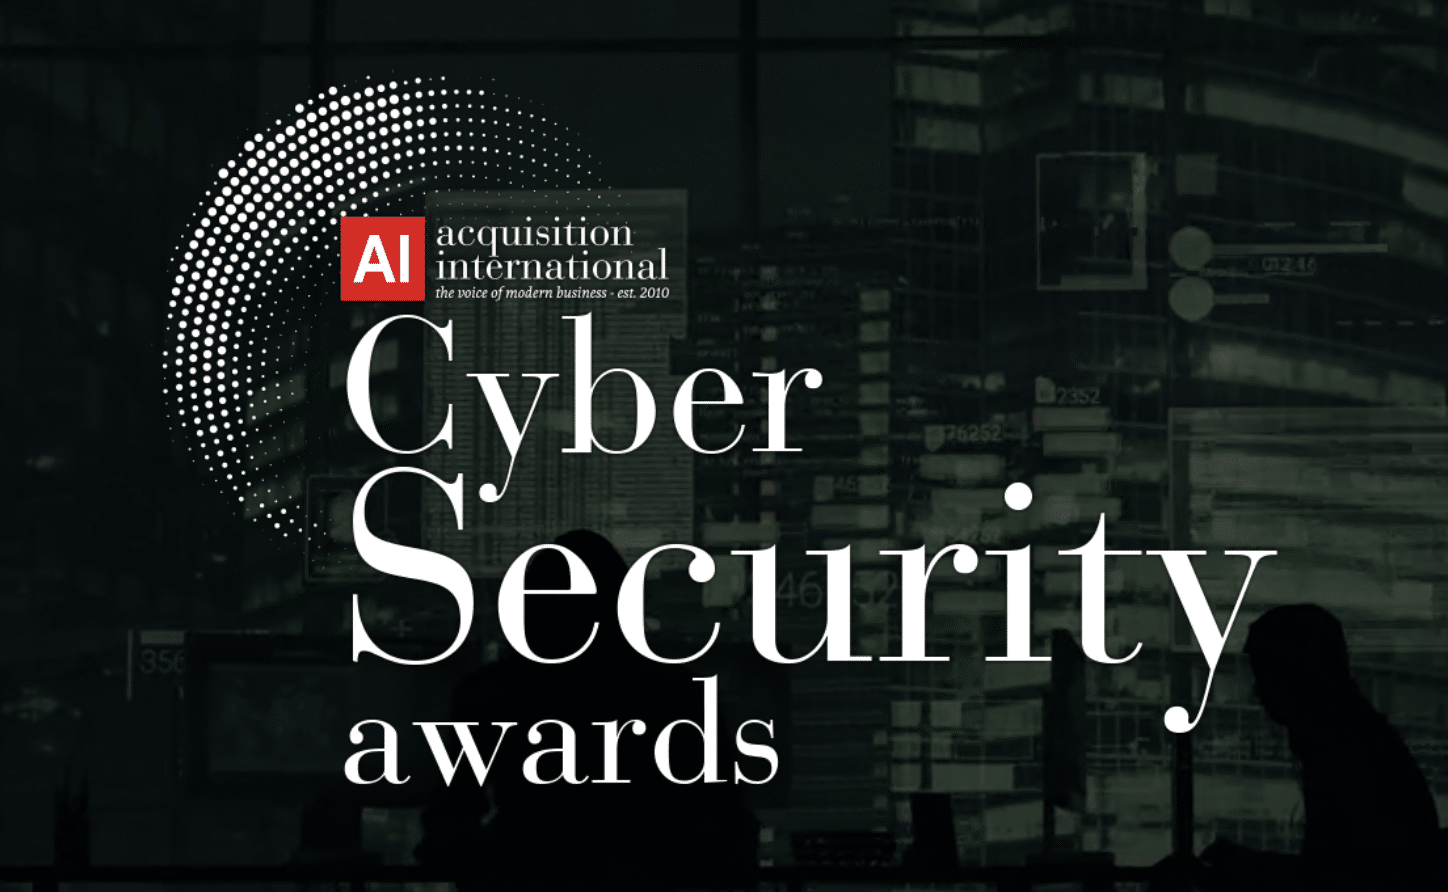 AI cybersecurity awards